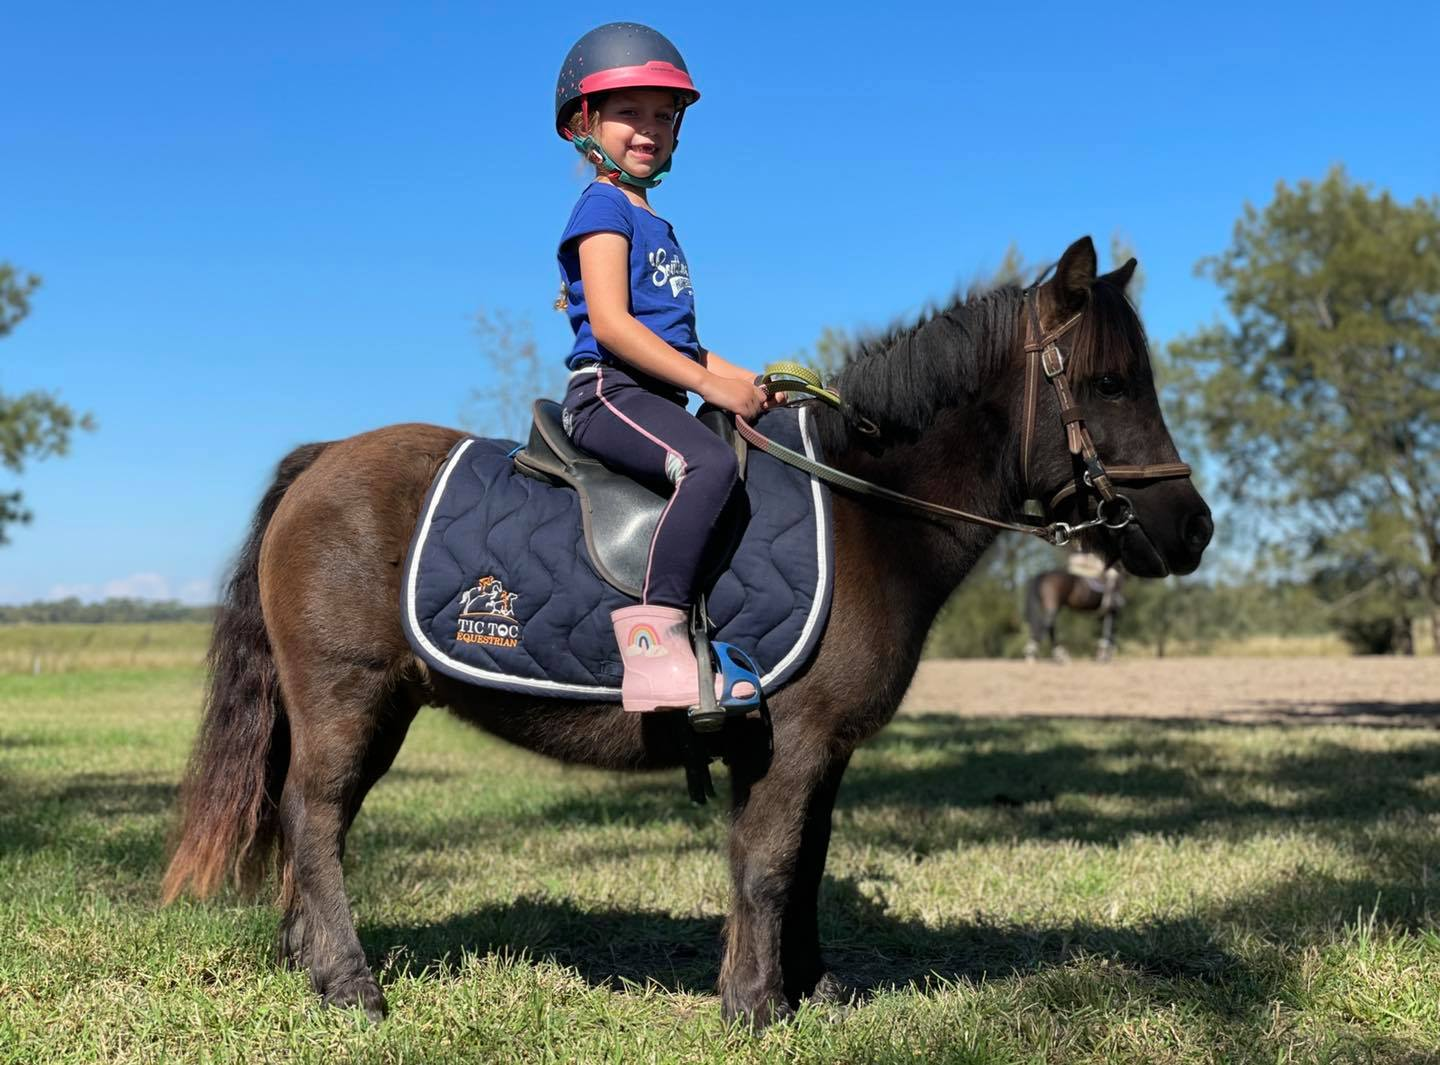 The preparation for the Hawkesbury show has been very successful for the Tic Toc - 1618987548 351 The preparation for the Hawkesbury show has been very successful image